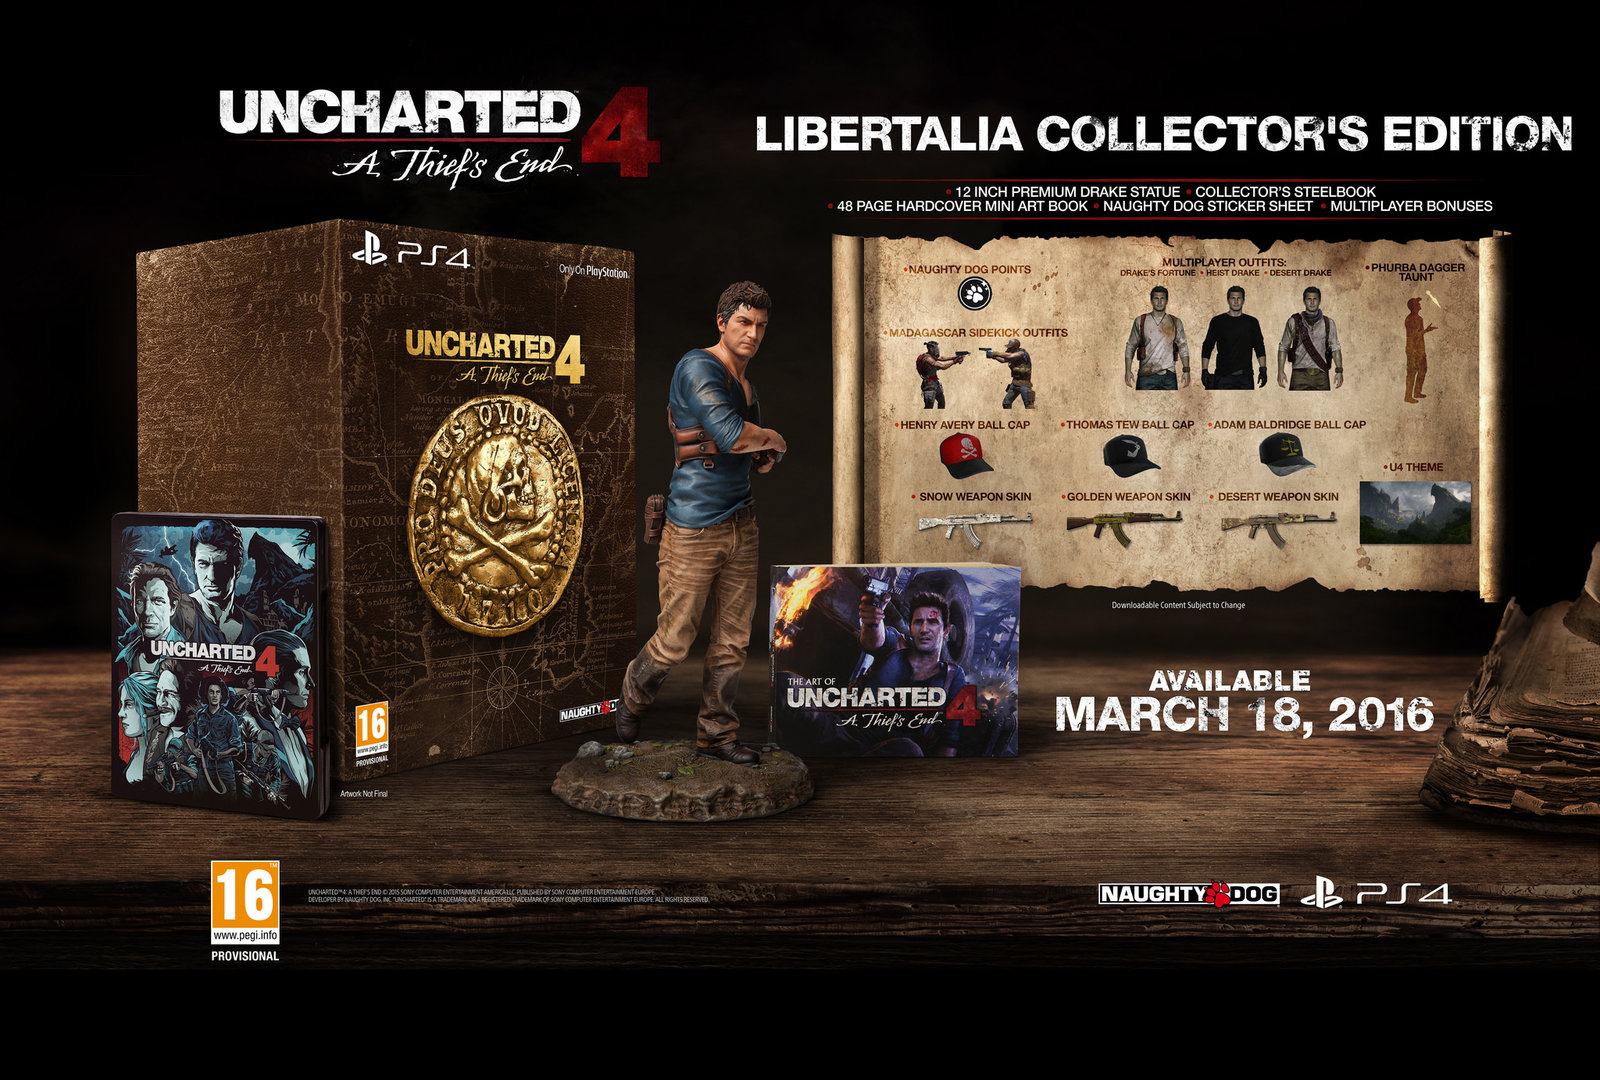 Uncharted 4: A Thief's End – Libertalia Collector's Edition